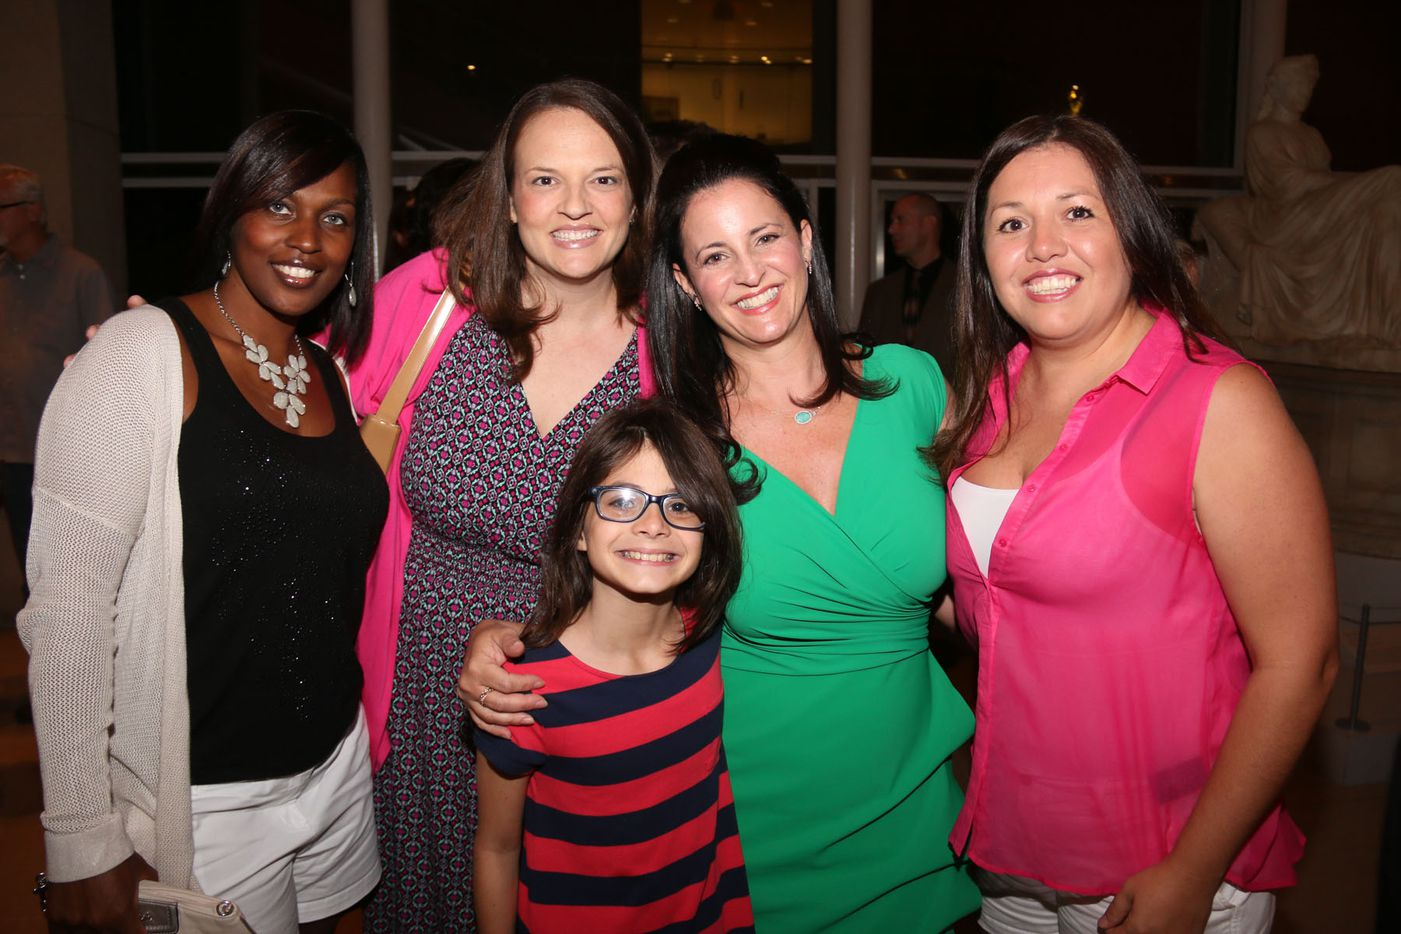 """Rhoni Golden (in the green) performed at Oral Fixation's """"The Best of Season Four"""" at the Dallas Museum of Art on August 15, 2015"""